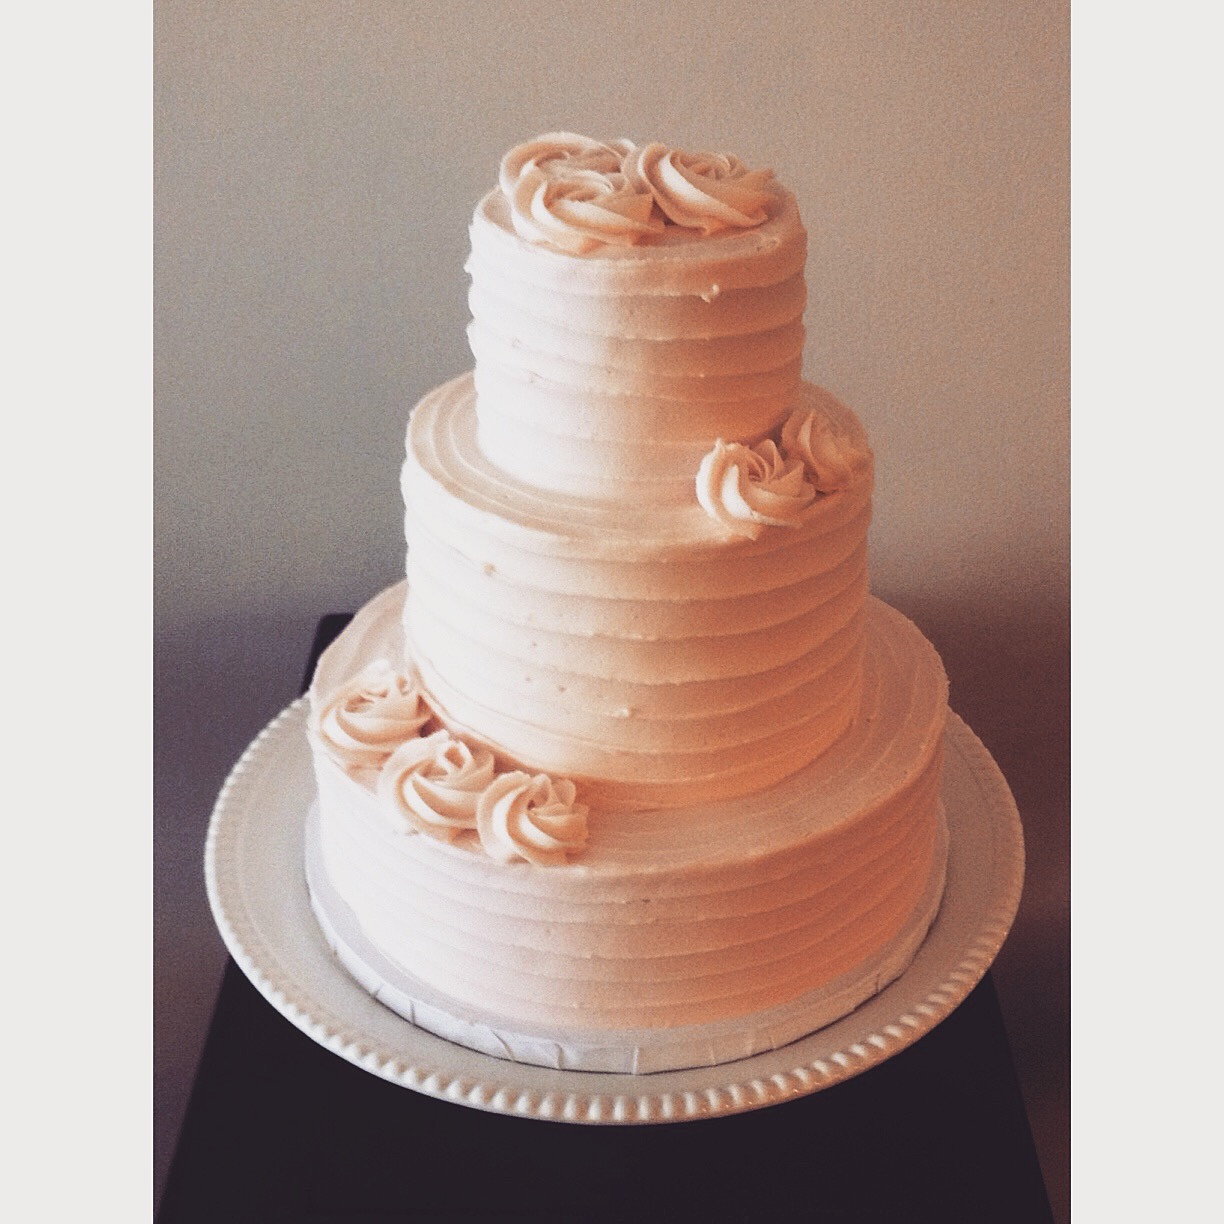 treats lunch cincinnati pink charlie rosette wedding cake cincinnati